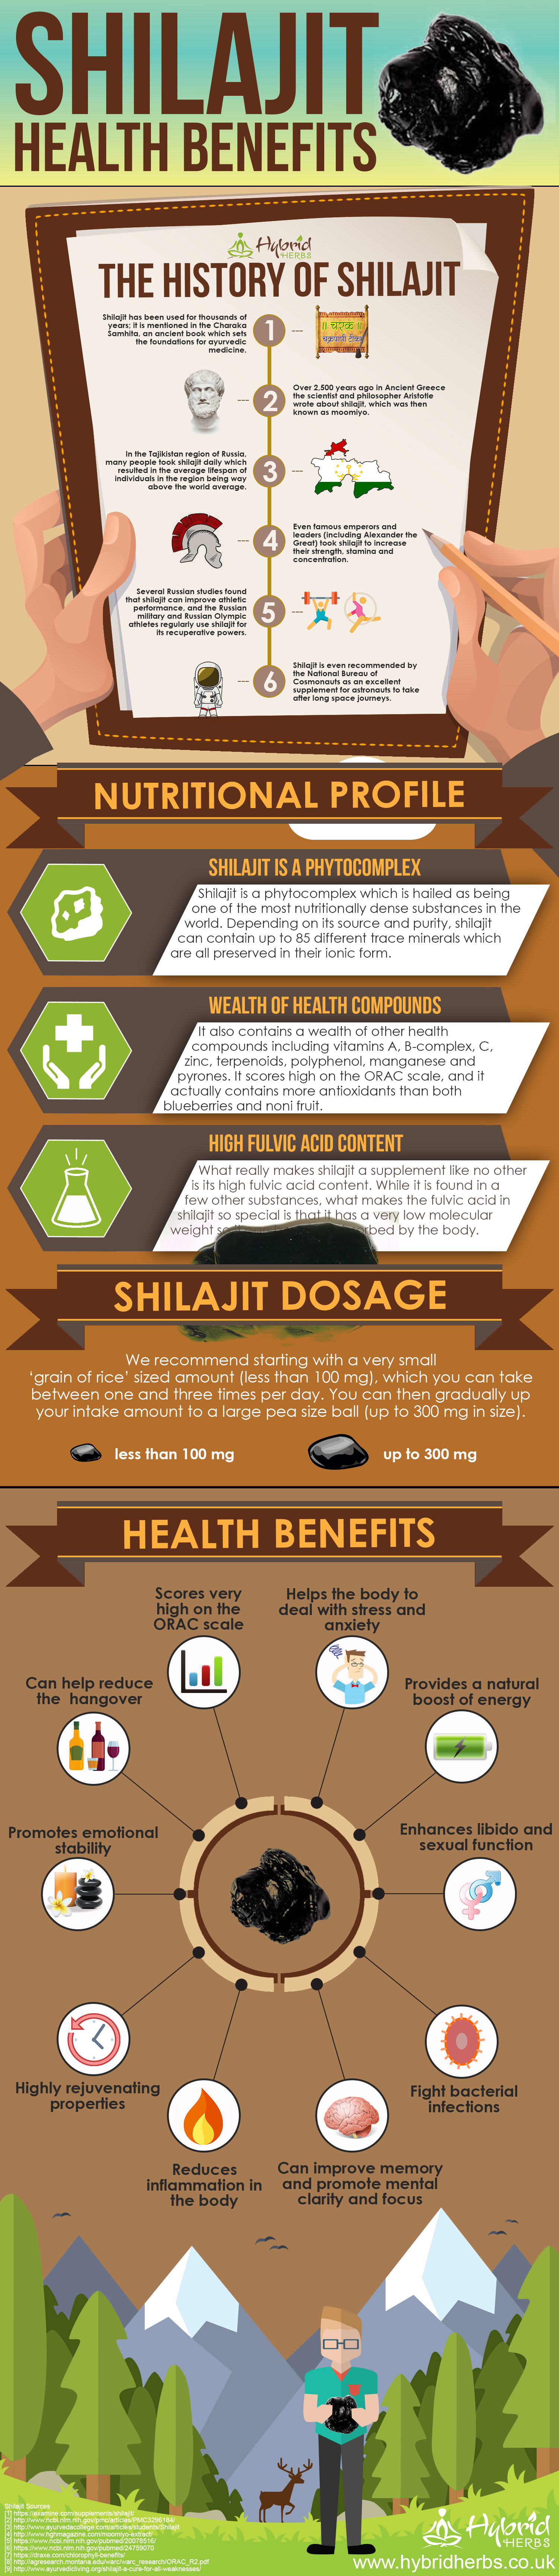 shilajit-health-benefits.jpg